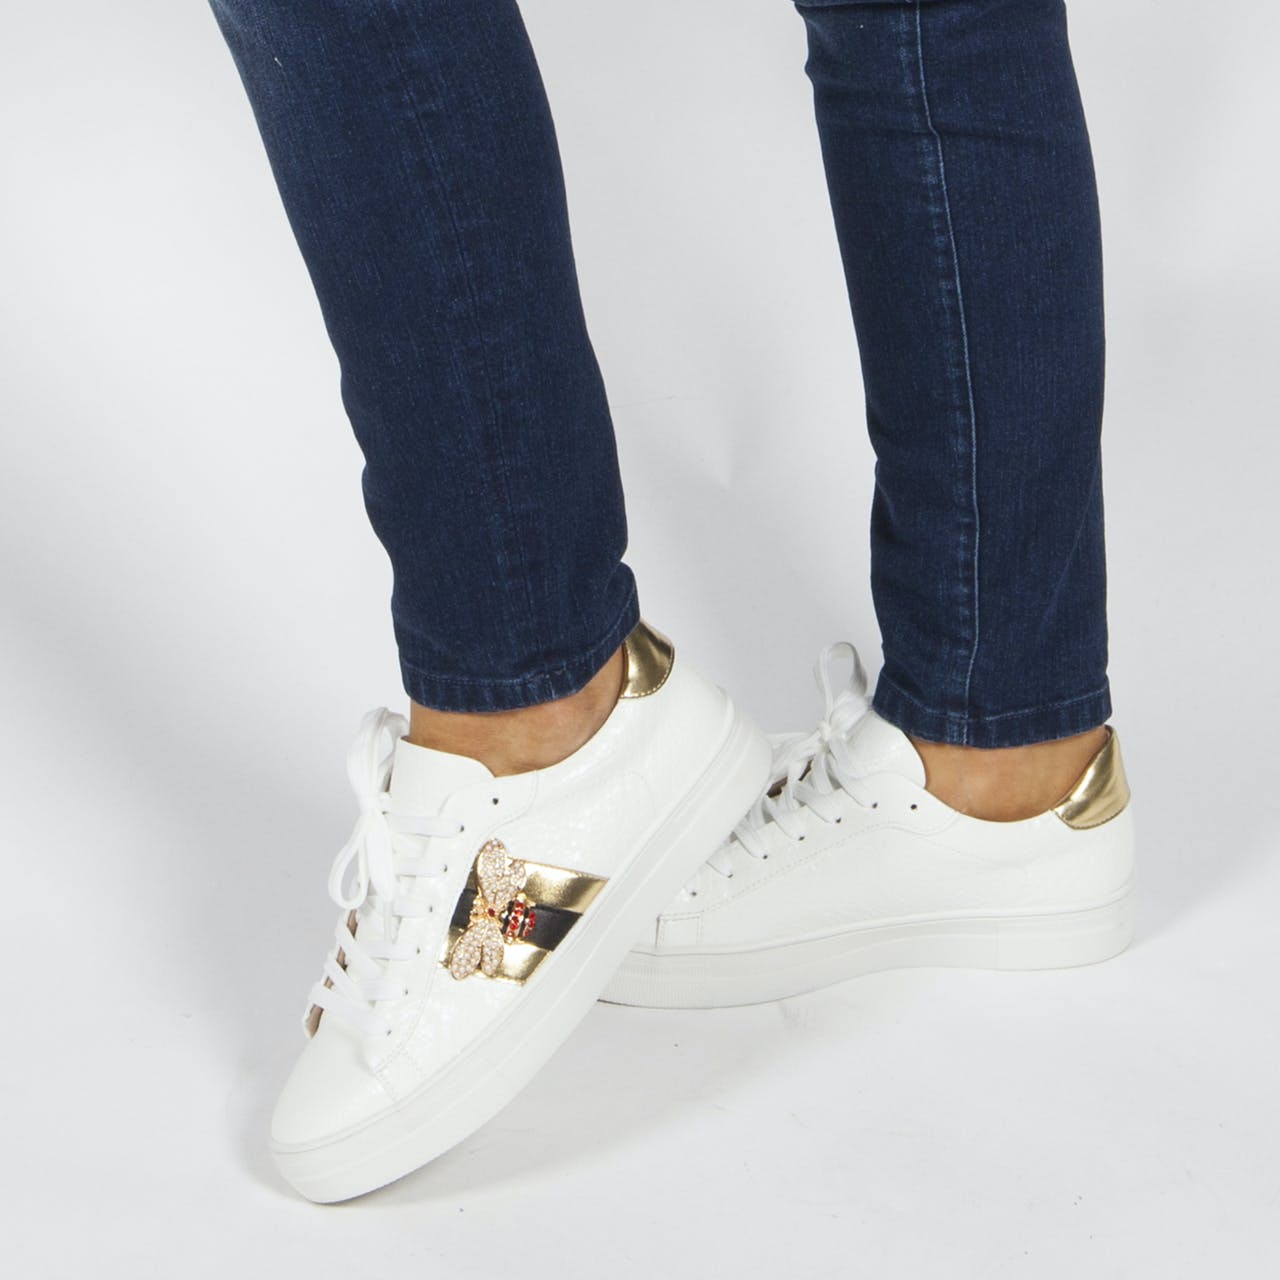 White with gold laced trainers